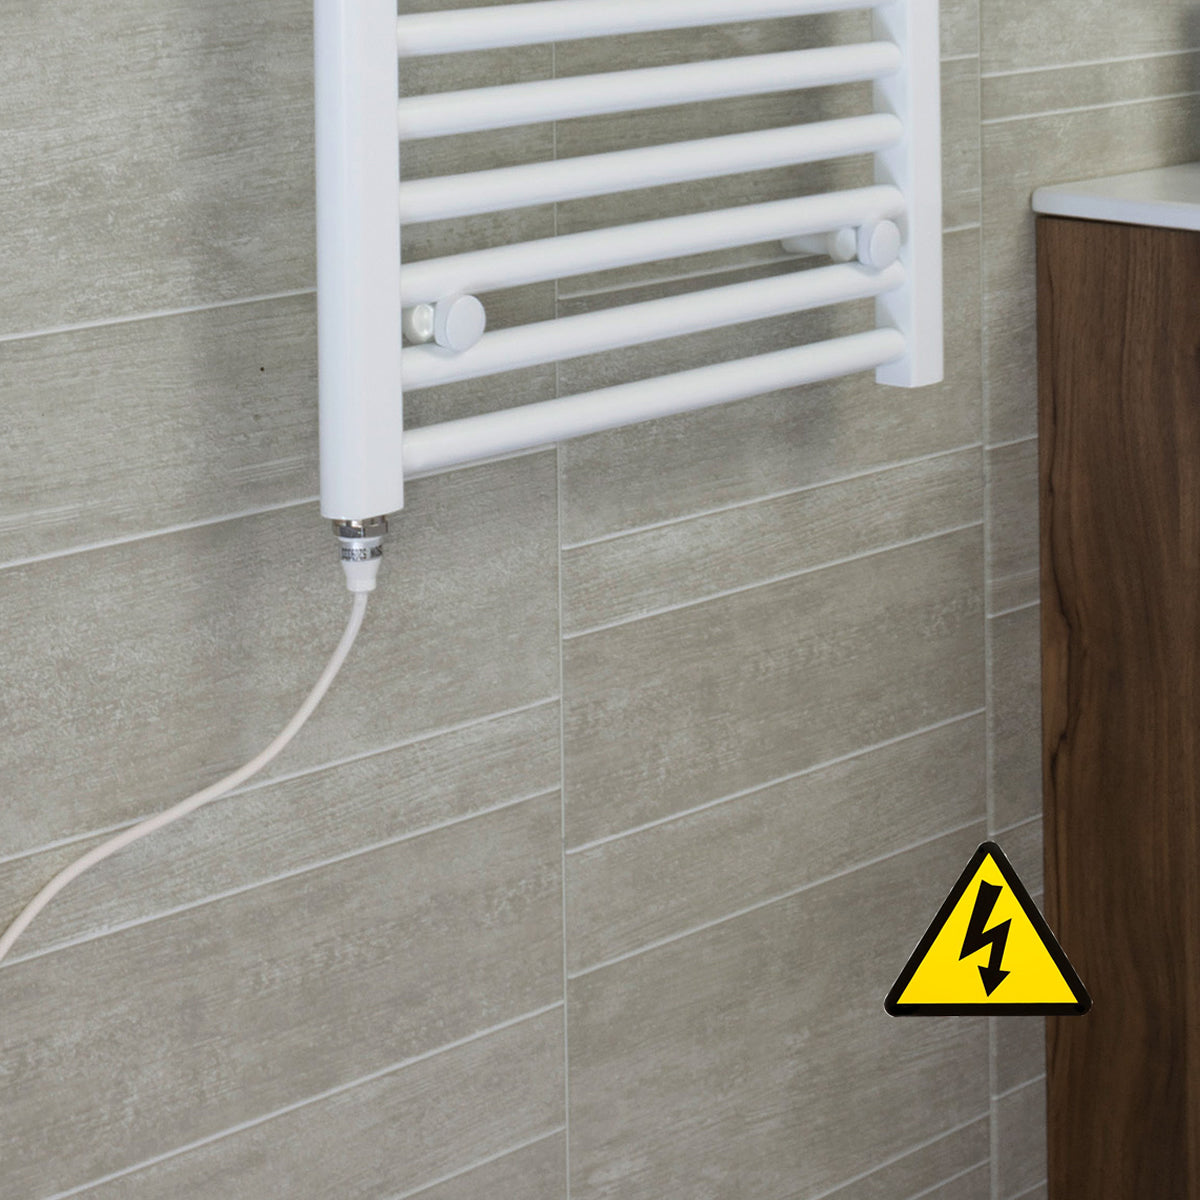 200mm X 600mm High Pre-Filled Chrome Electric Towel Rail Radiator With Single Heat Element